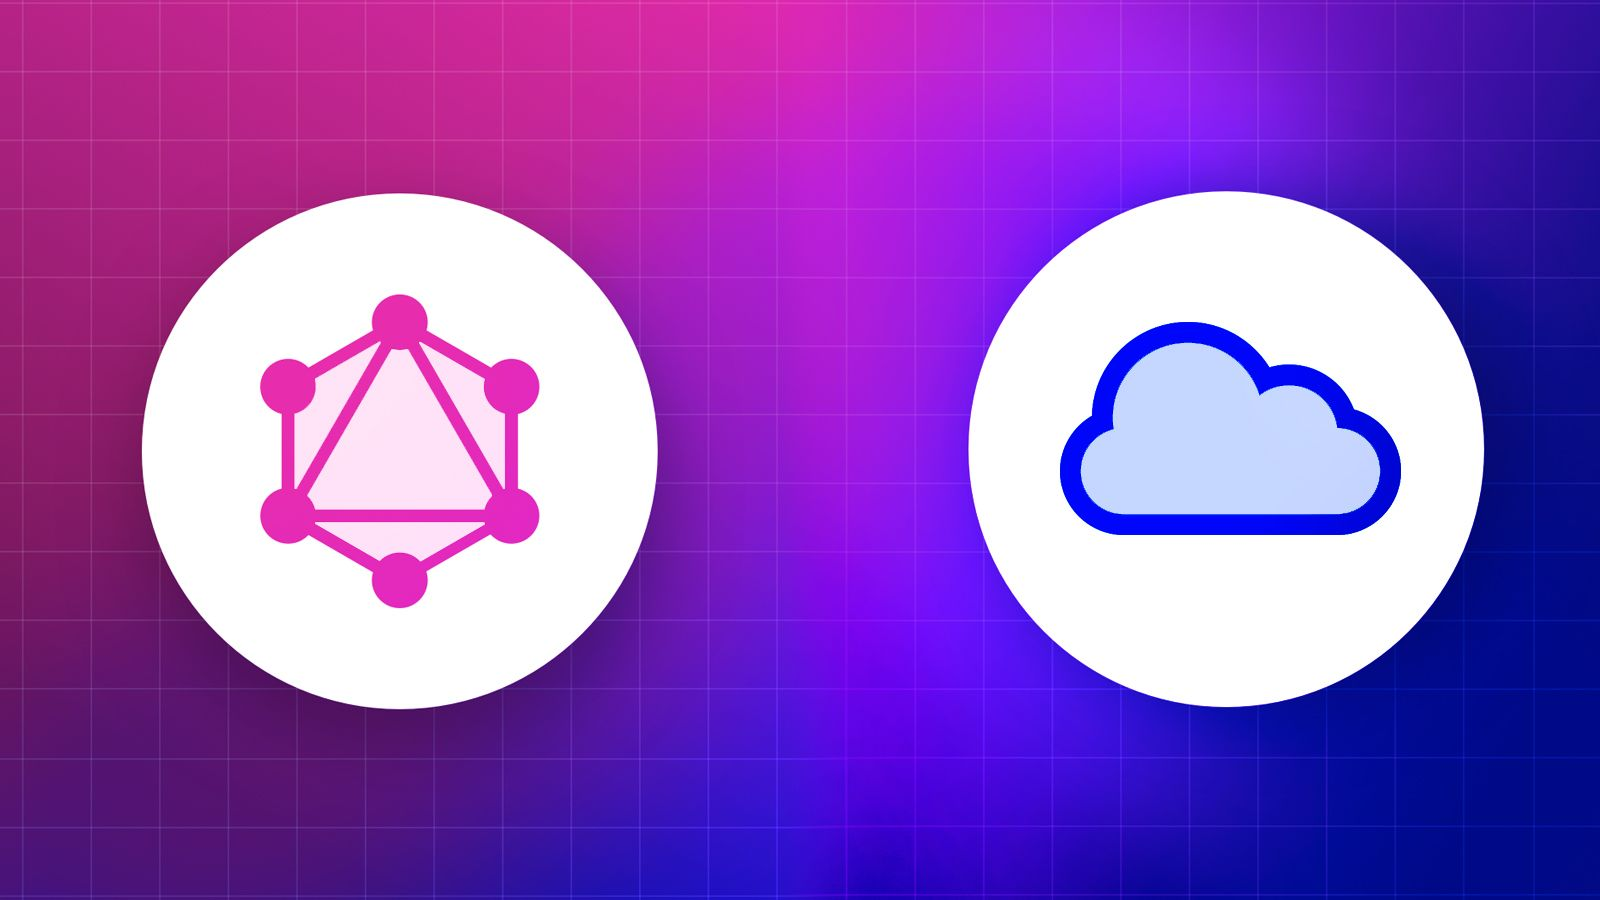 An illustration with the GraphQL and REST icons